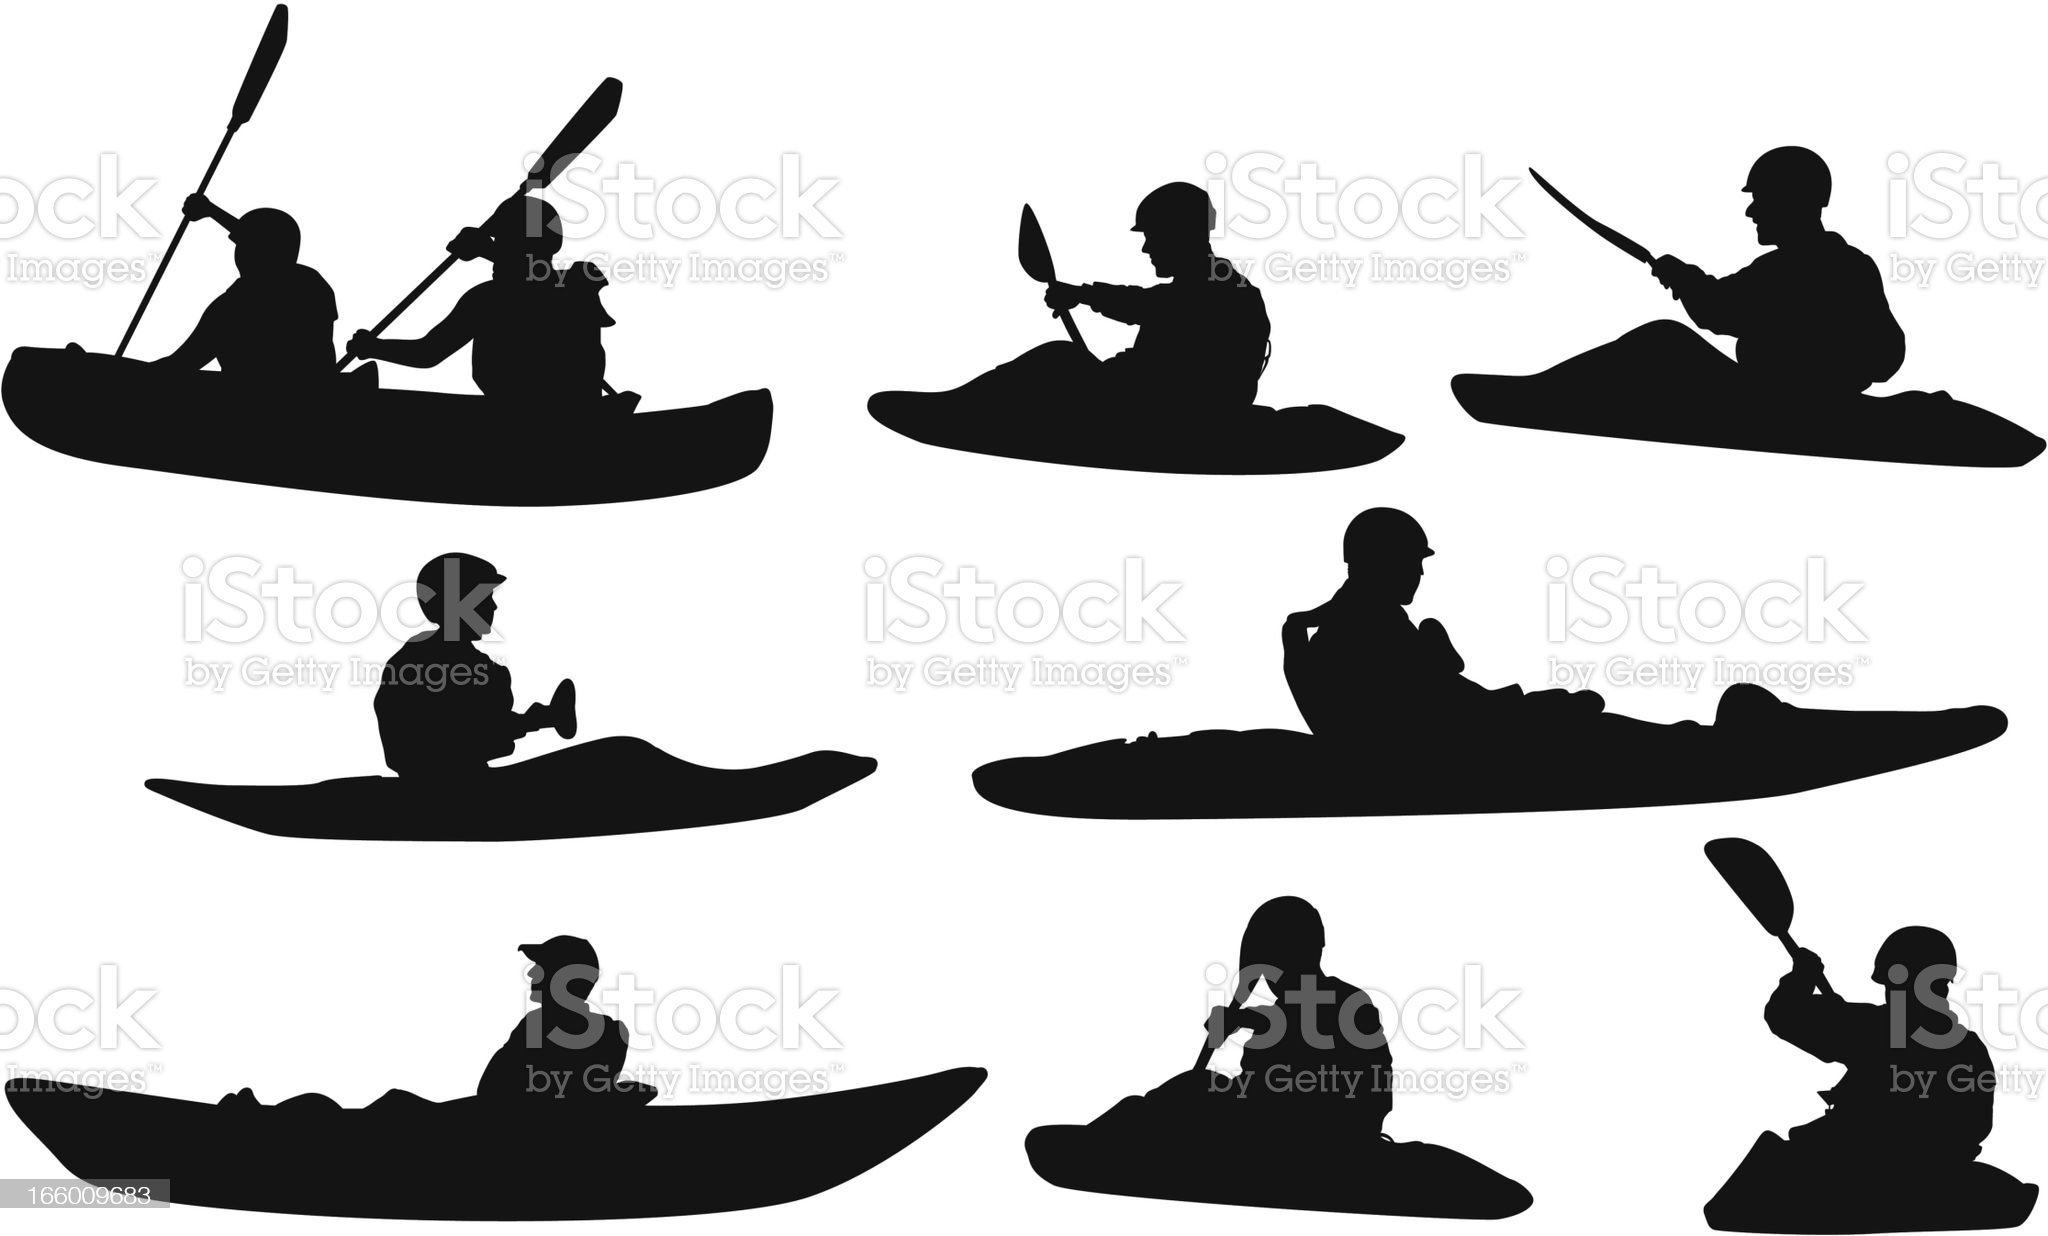 Multiple silhouettes of people canoeing royalty-free stock vector art